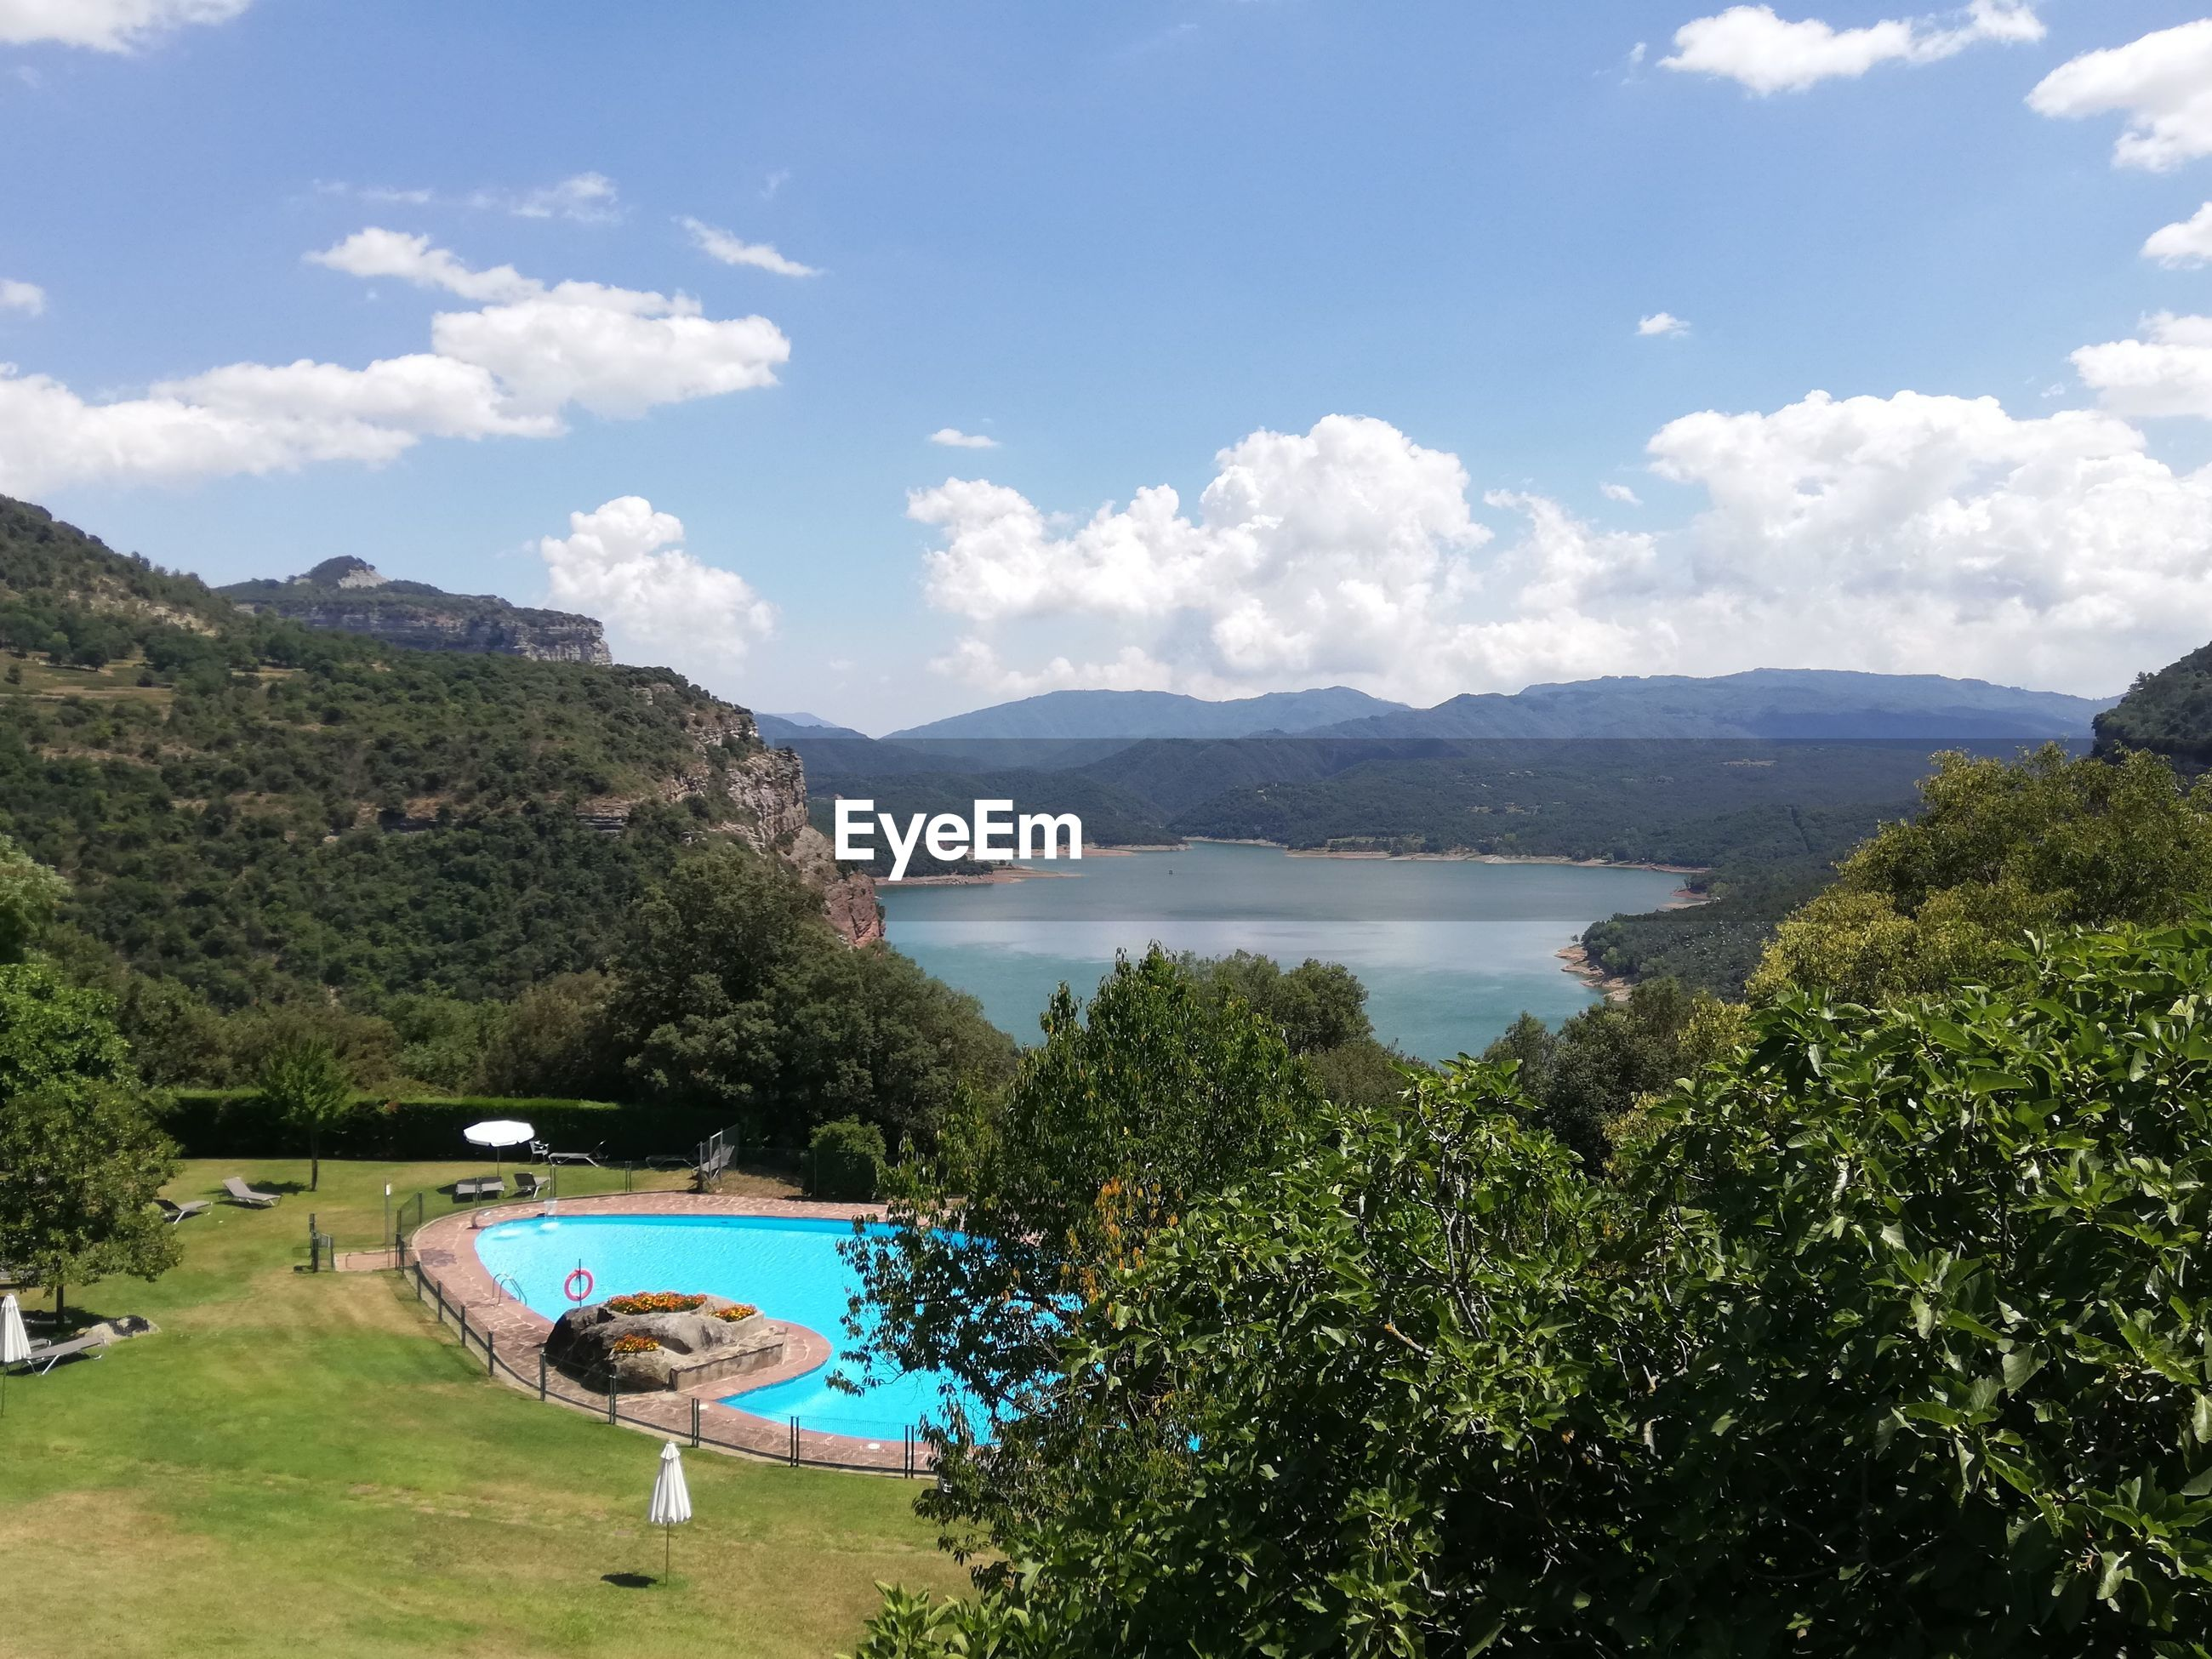 HIGH ANGLE VIEW OF SWIMMING POOL BY TREE MOUNTAINS AGAINST SKY